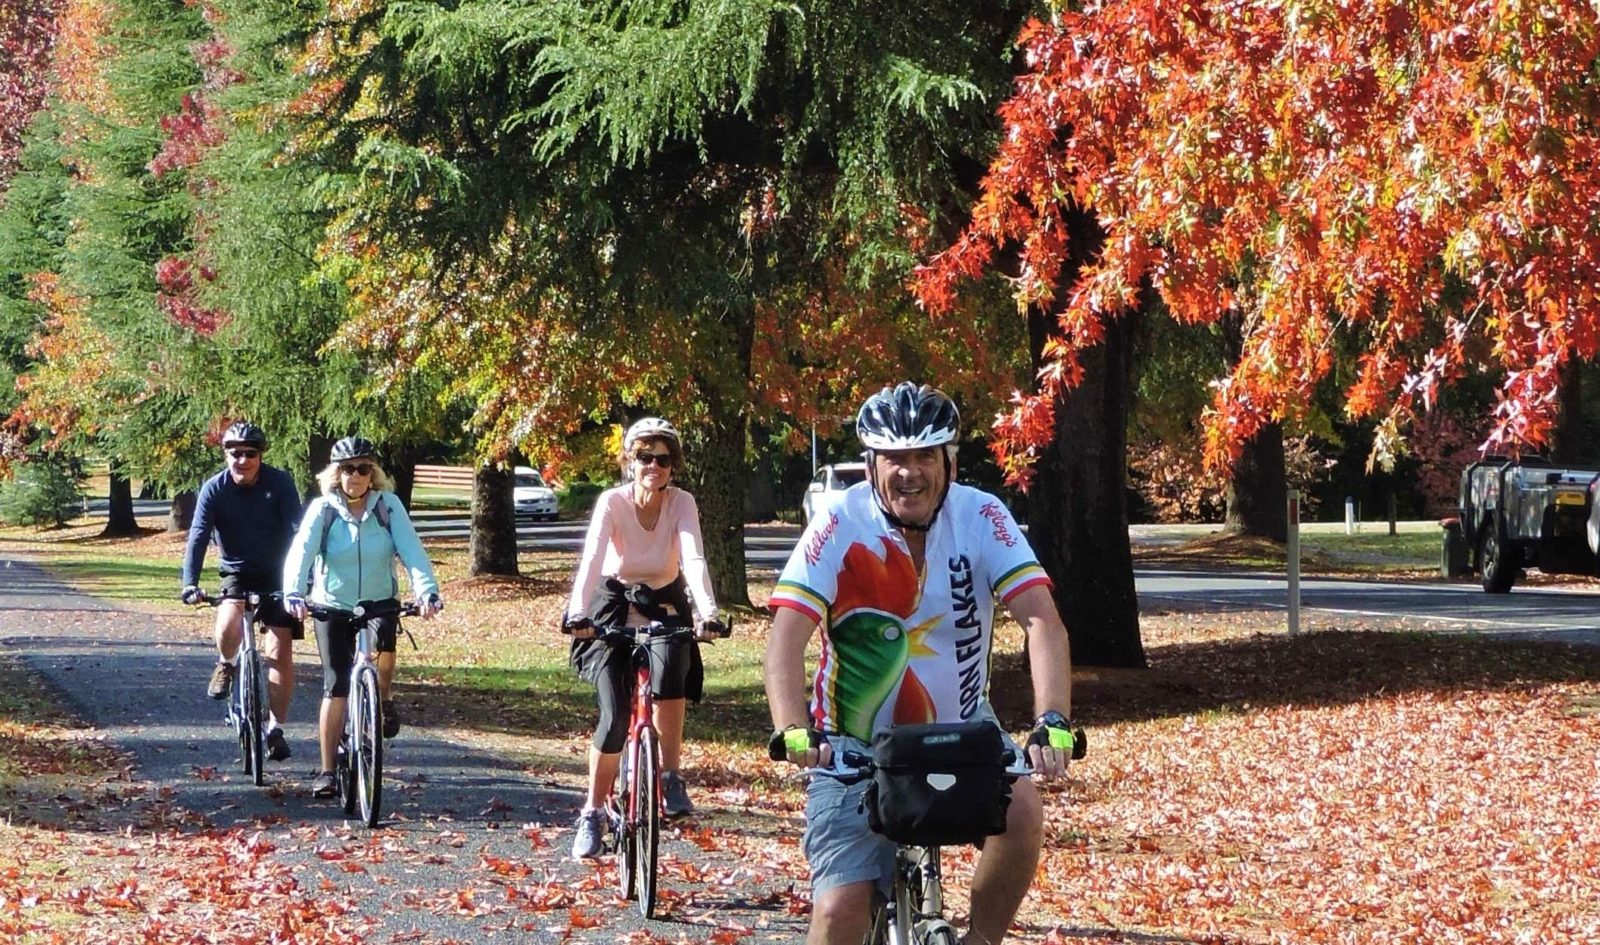 Autumn is a great time for cycling in N.N. Victoria